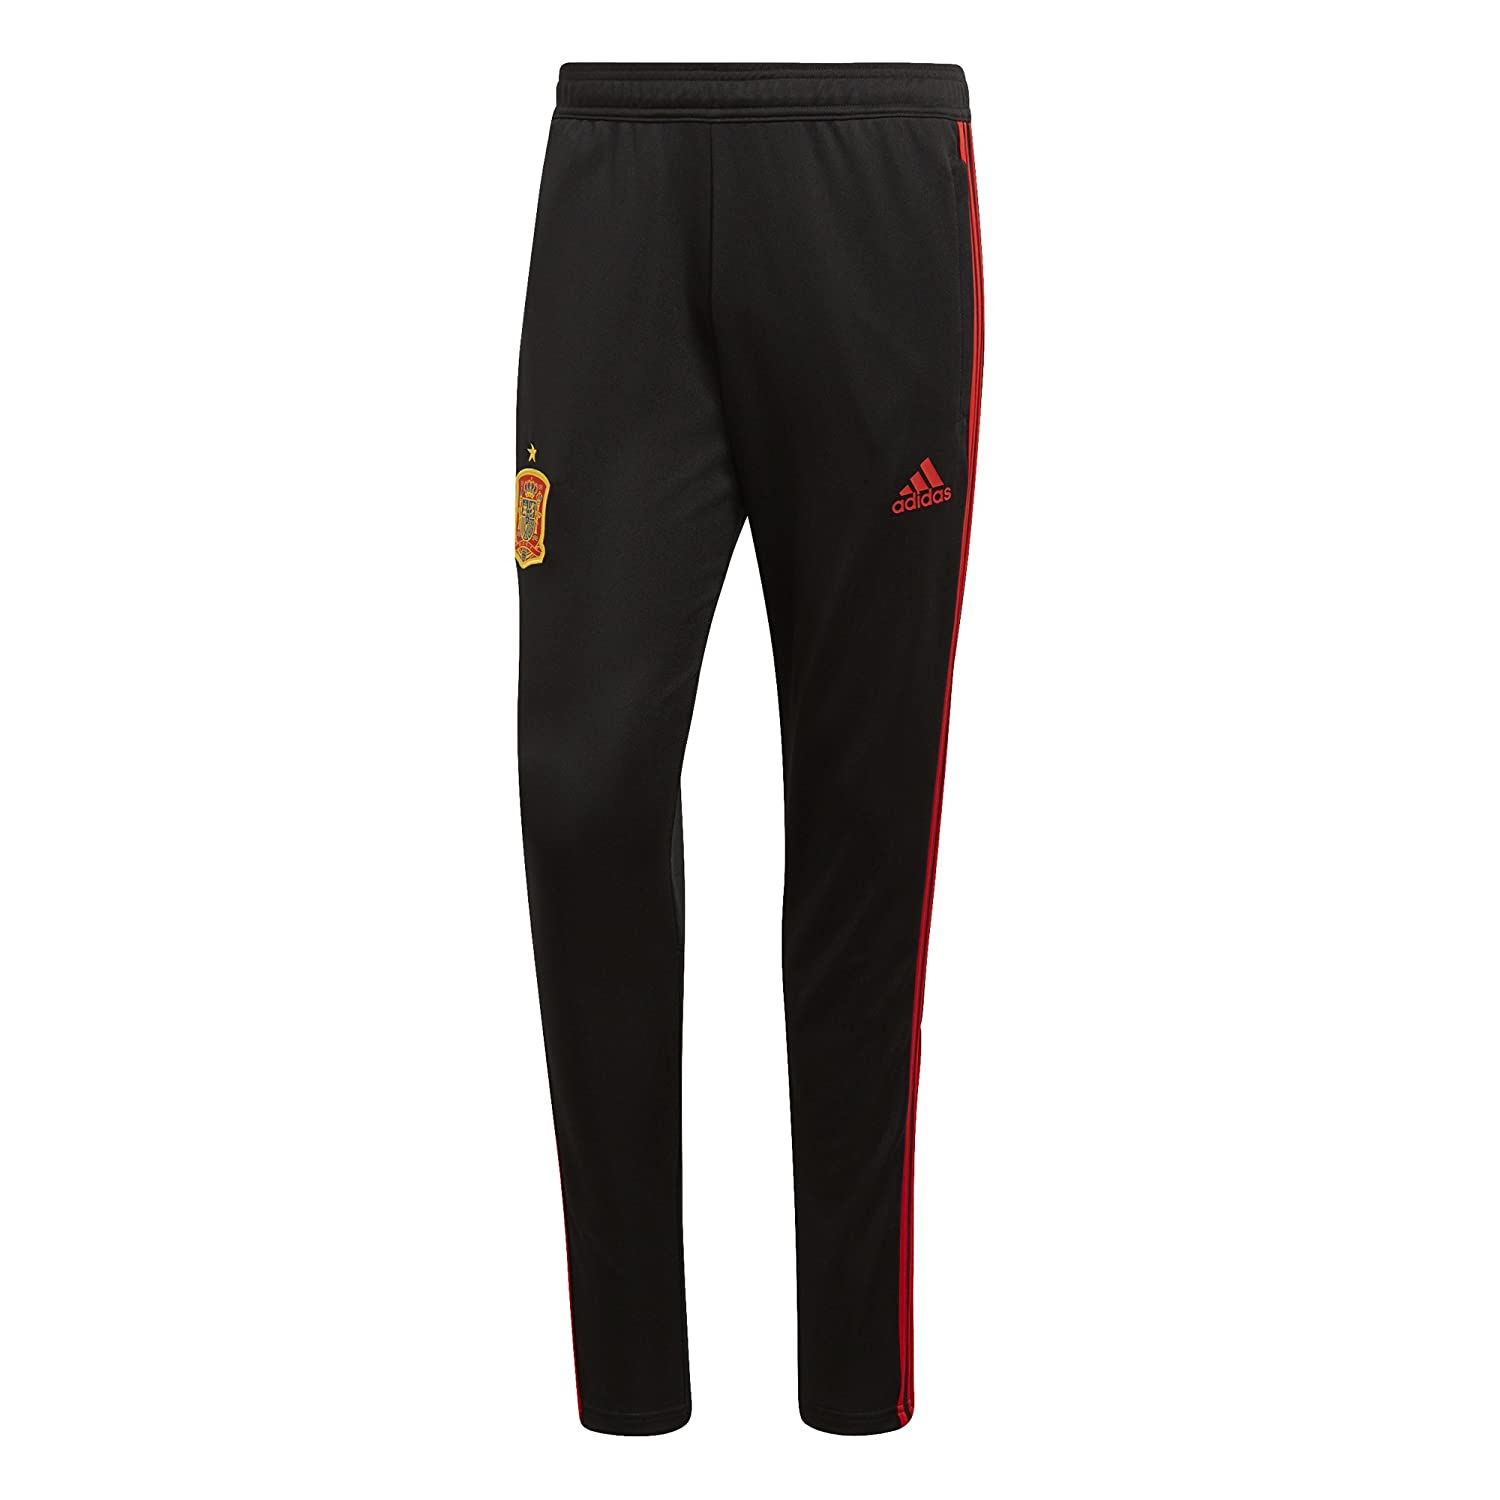 2018-2019 Spain Adidas Training Pants (Black) B077NSTBM1 Large 36